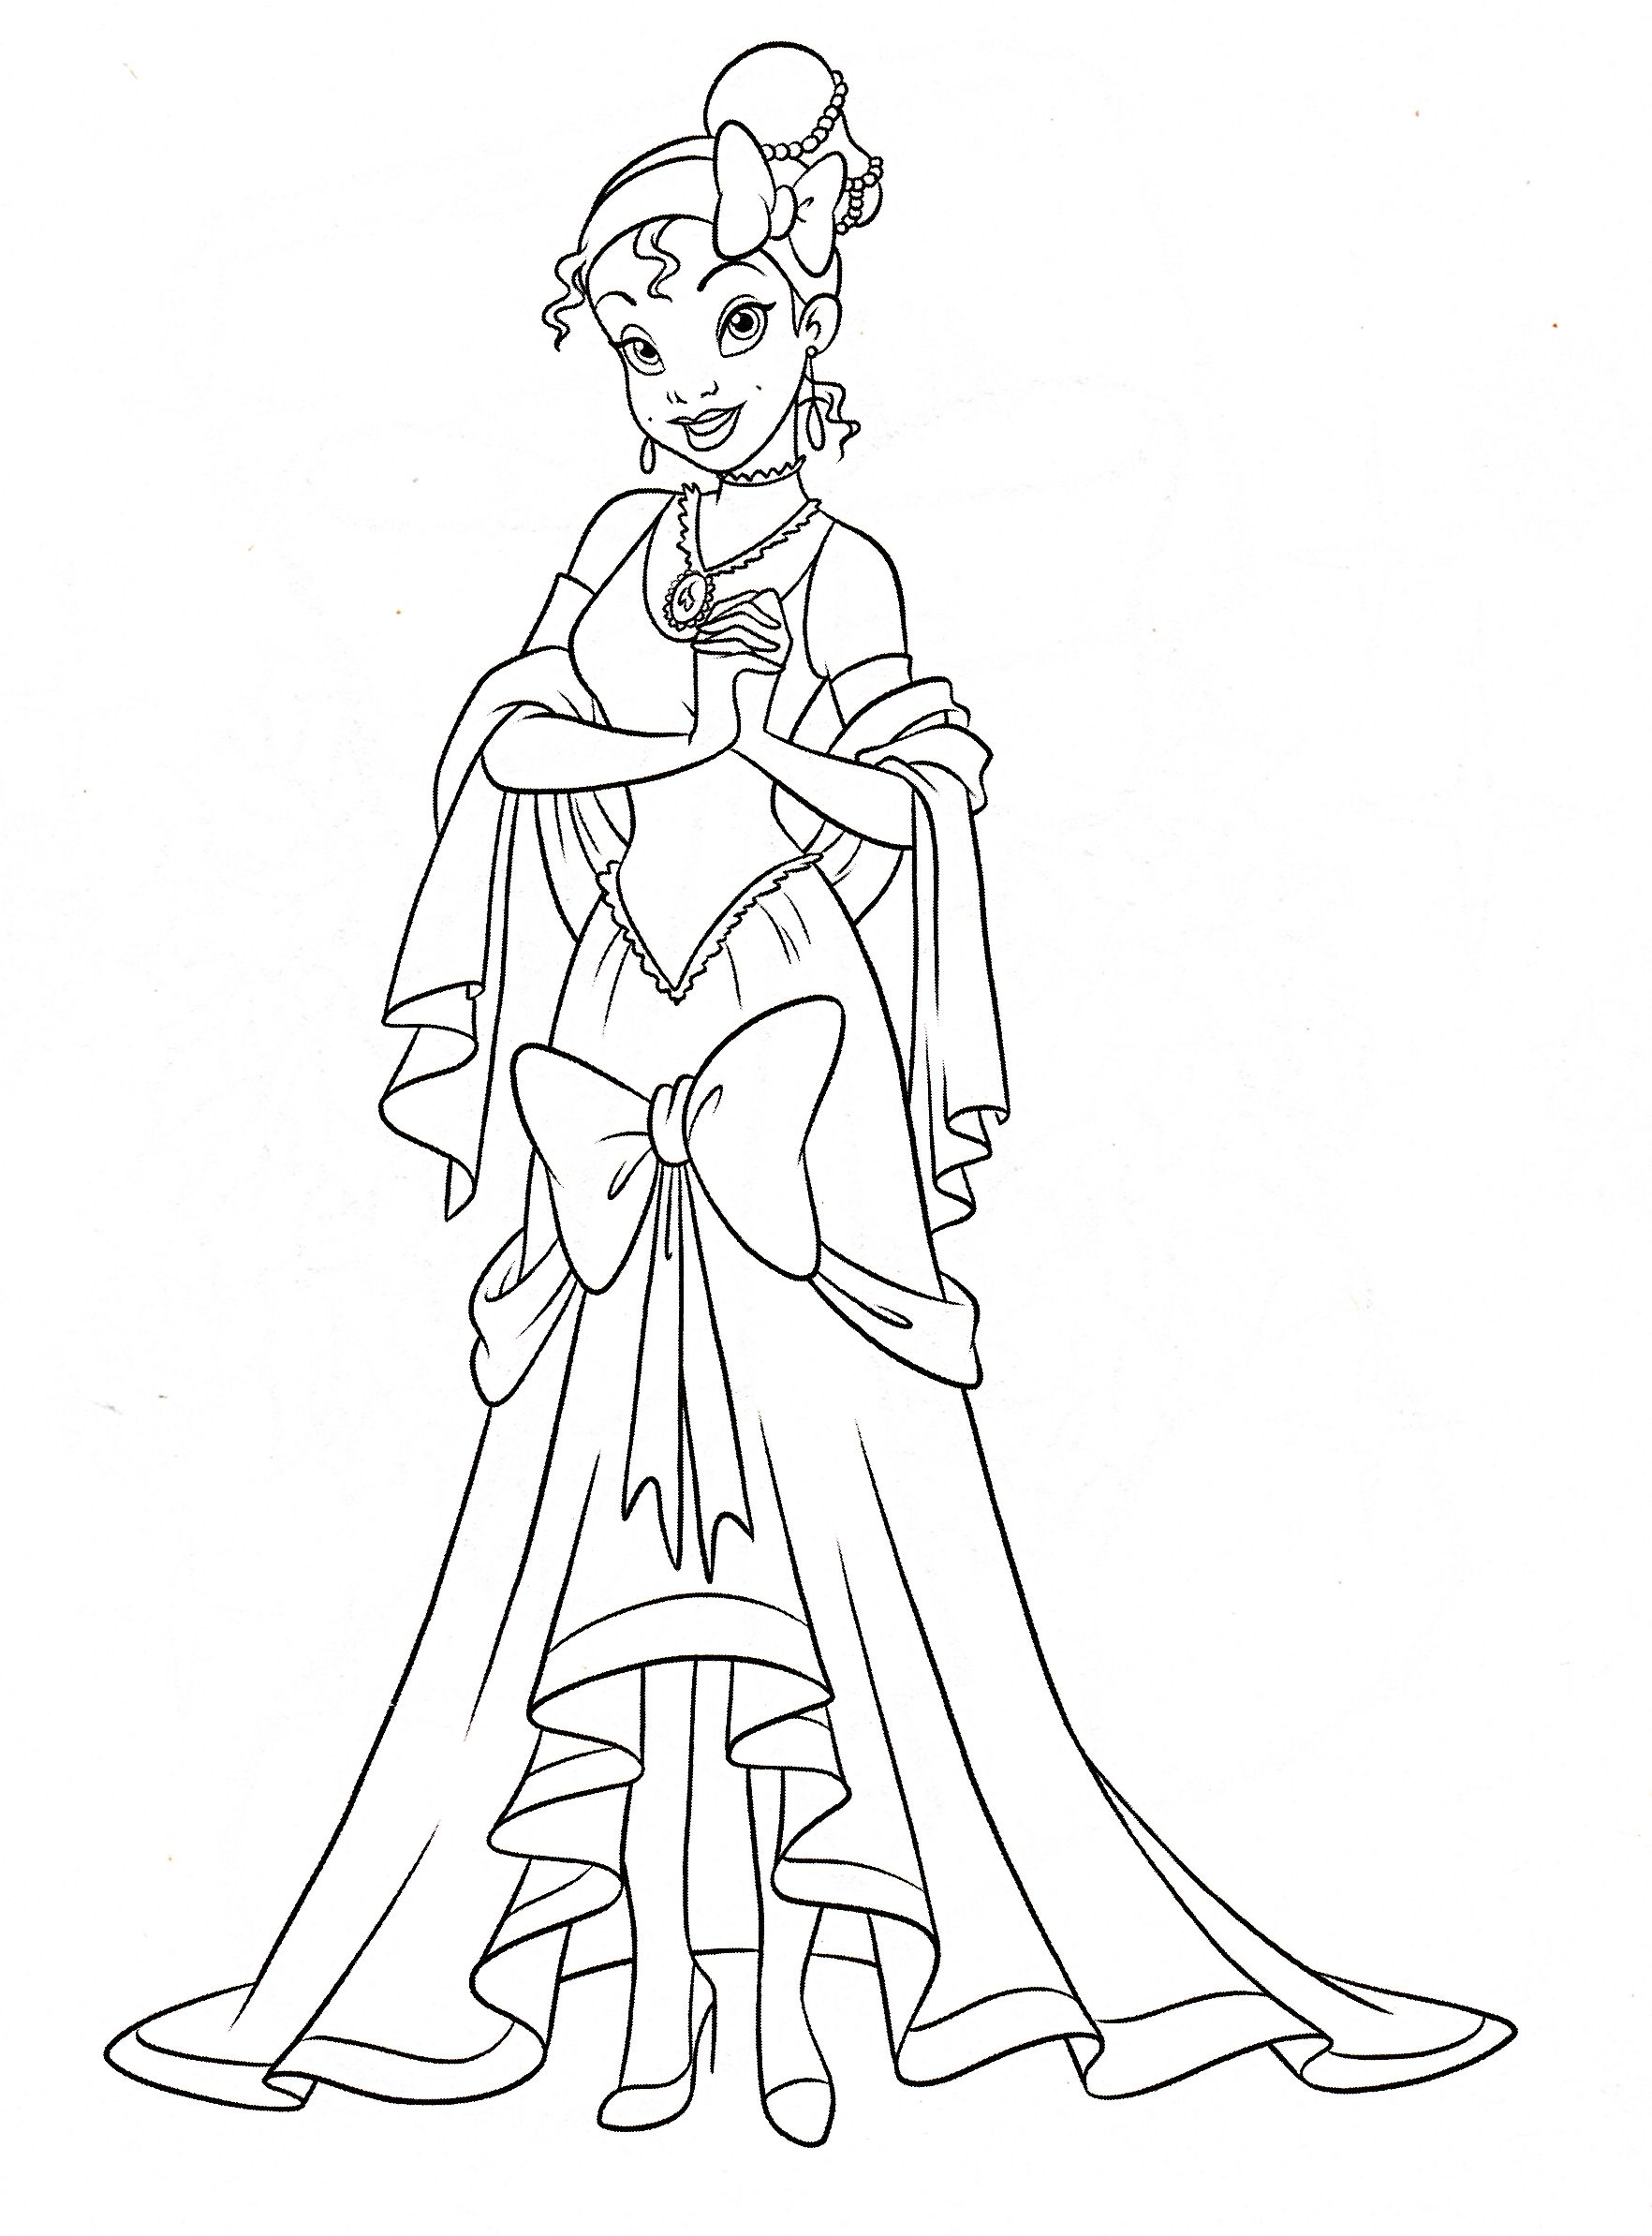 This beautiful tiana the princess coloring page from princess and ...